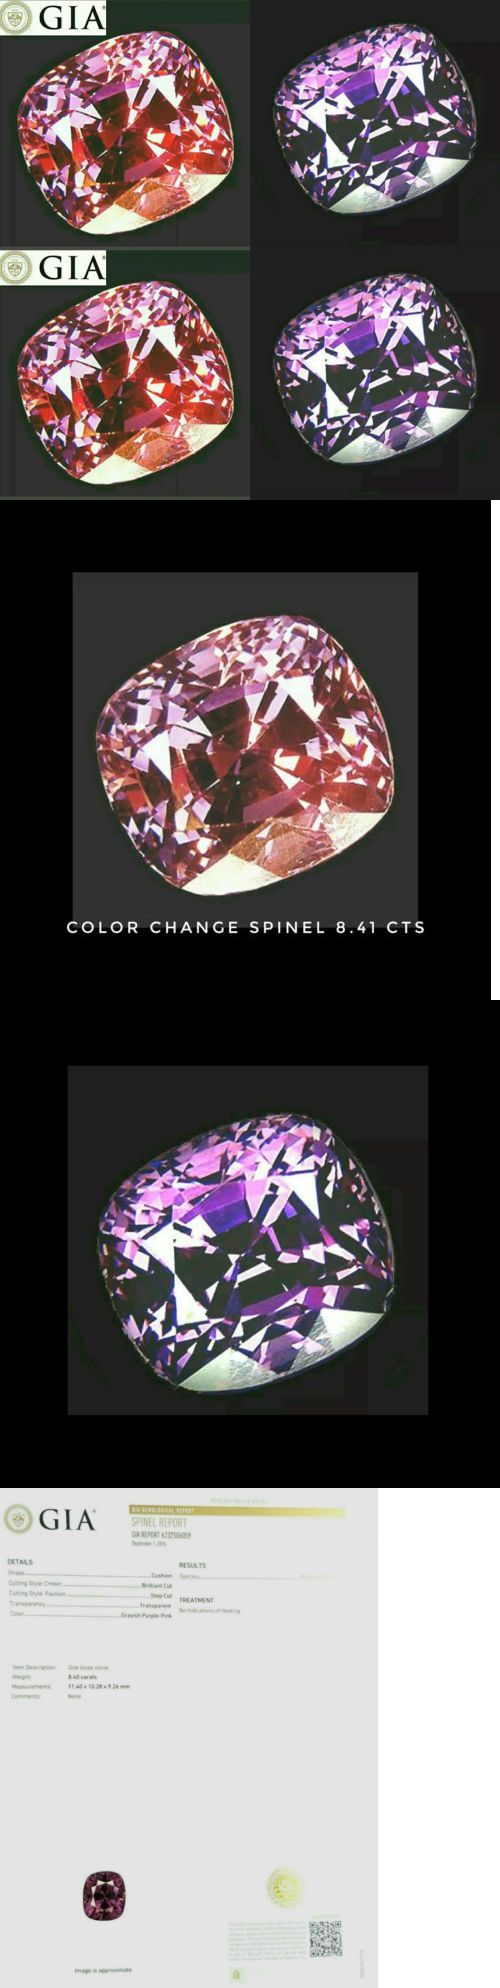 Spinel 110873: Gia 8.41 Ct Color Change Spinel Cushion From Tanzania Tundru,Check Video -> BUY IT NOW ONLY: $5700 on eBay!